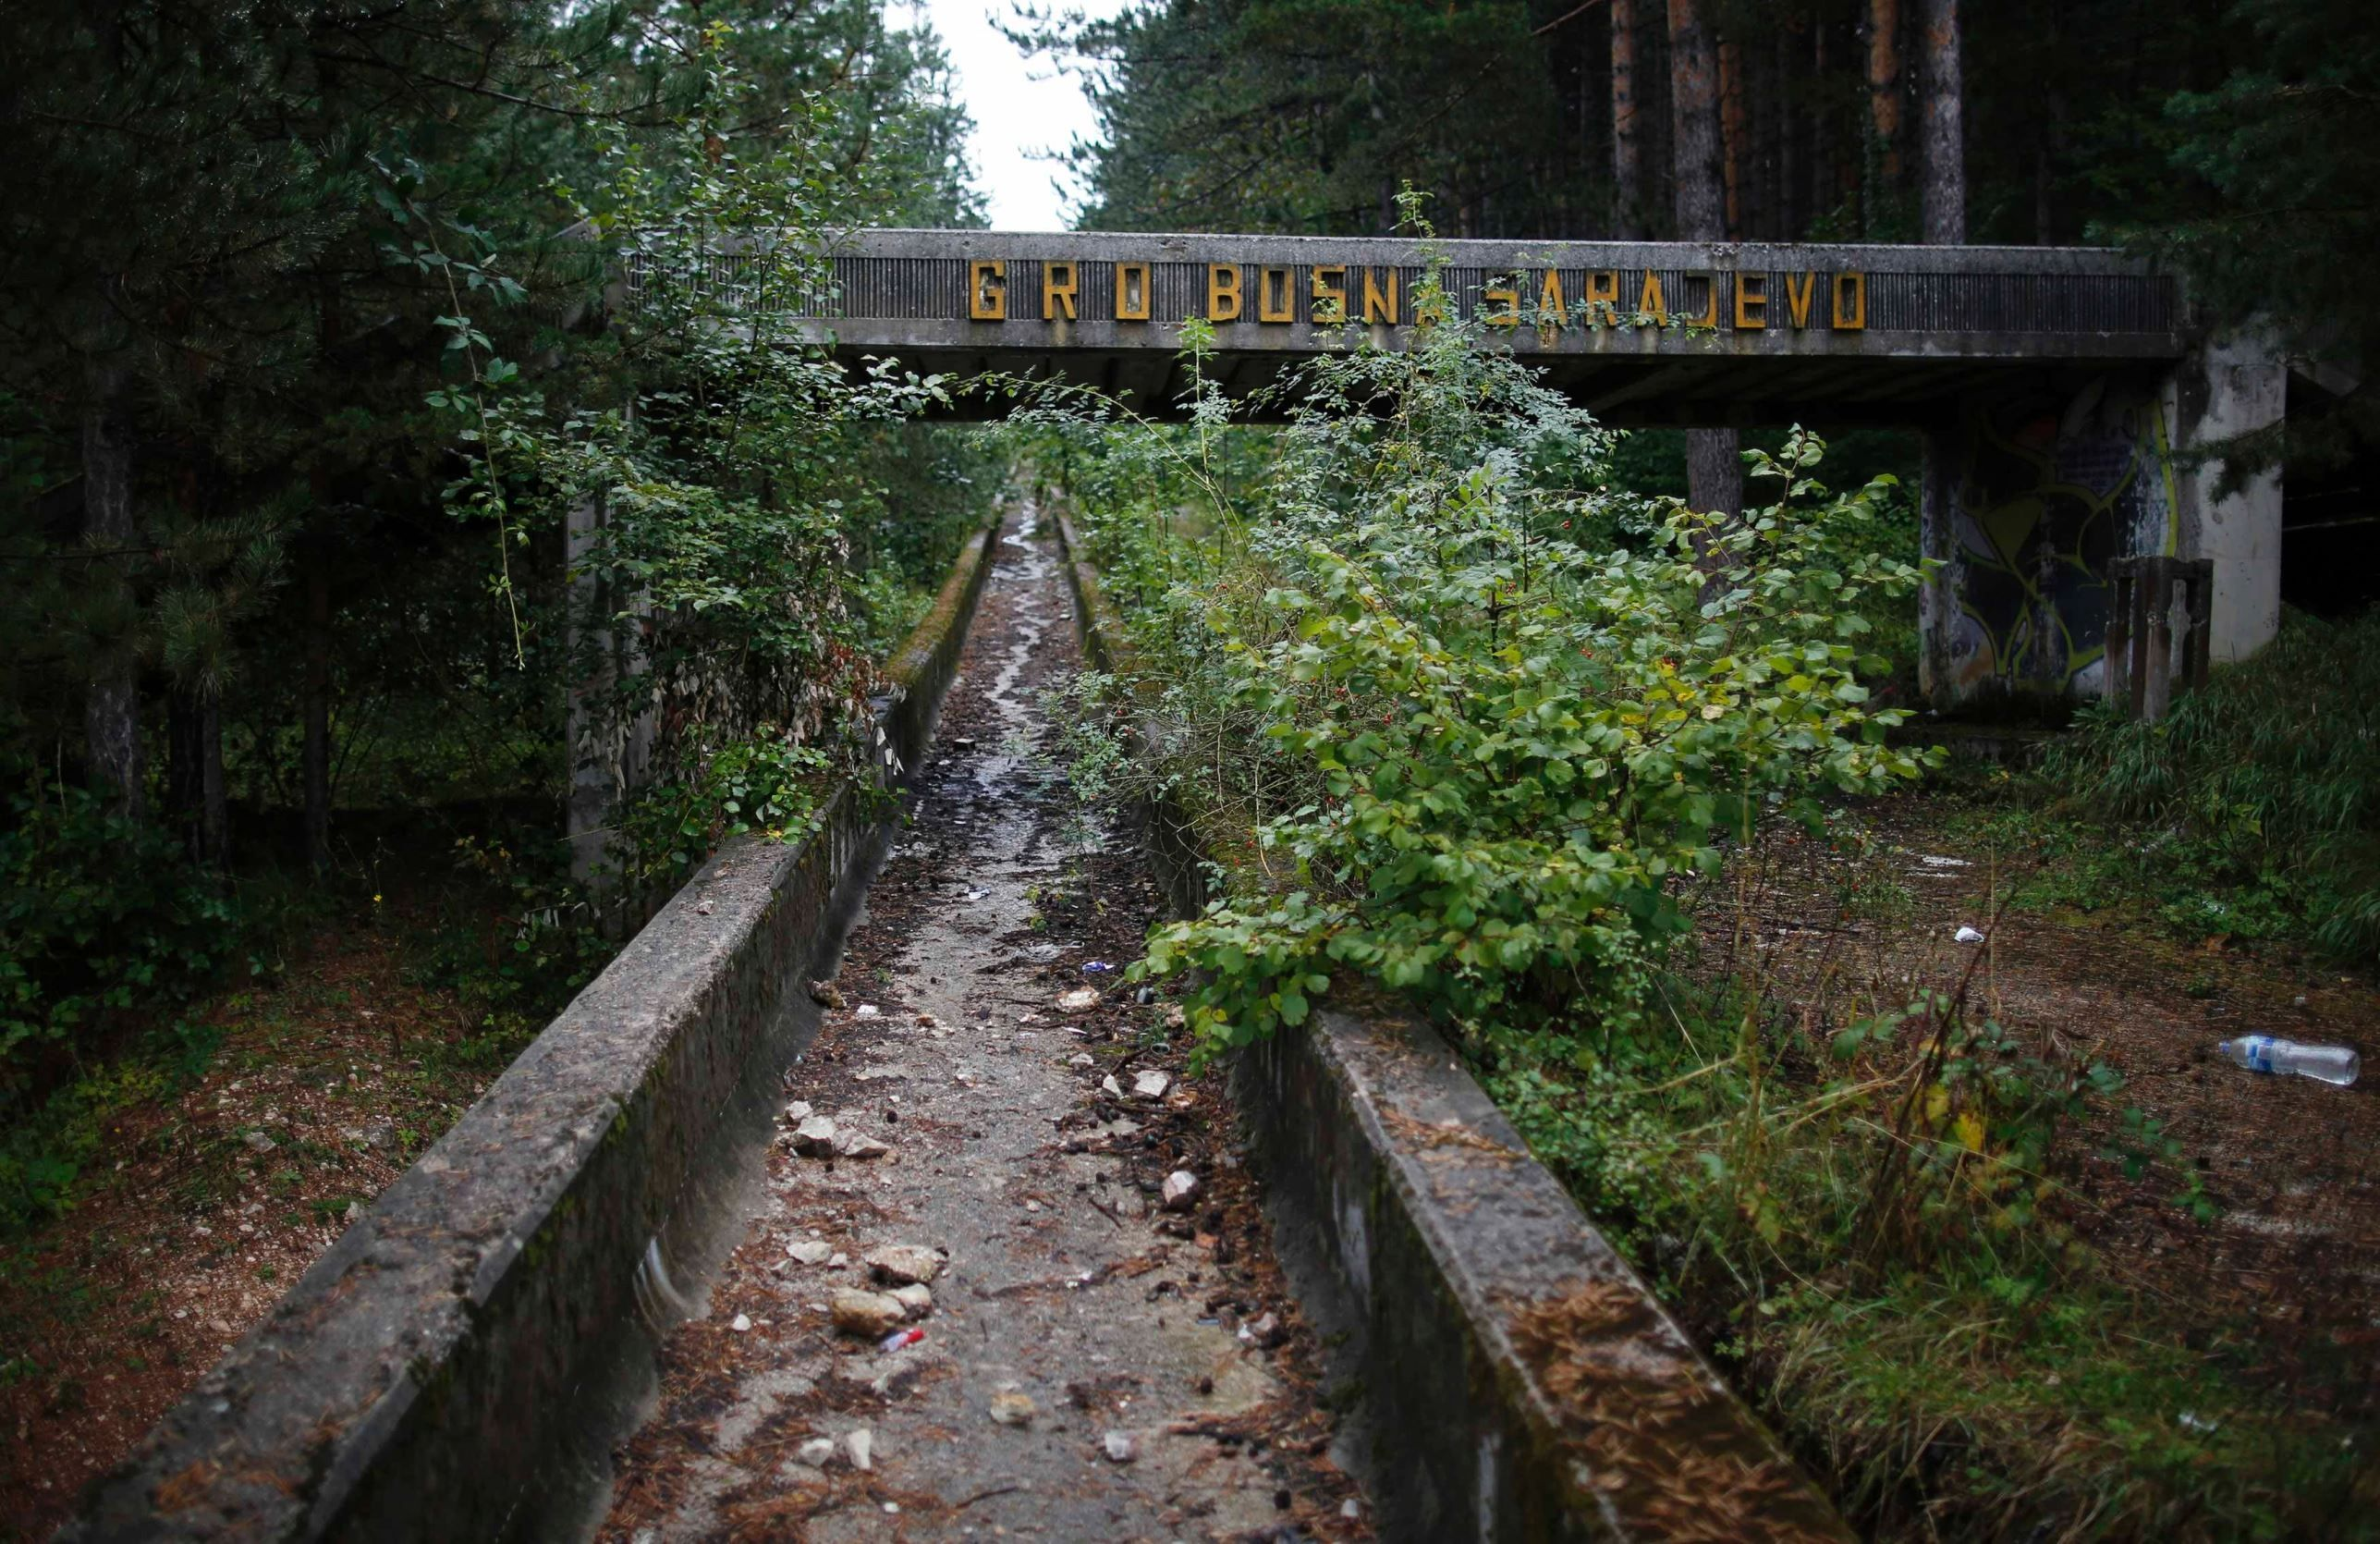 A disused bobsleigh track from the 1984 Winter Olympics held in Sarajevo, Bosnia and Herzegovina.